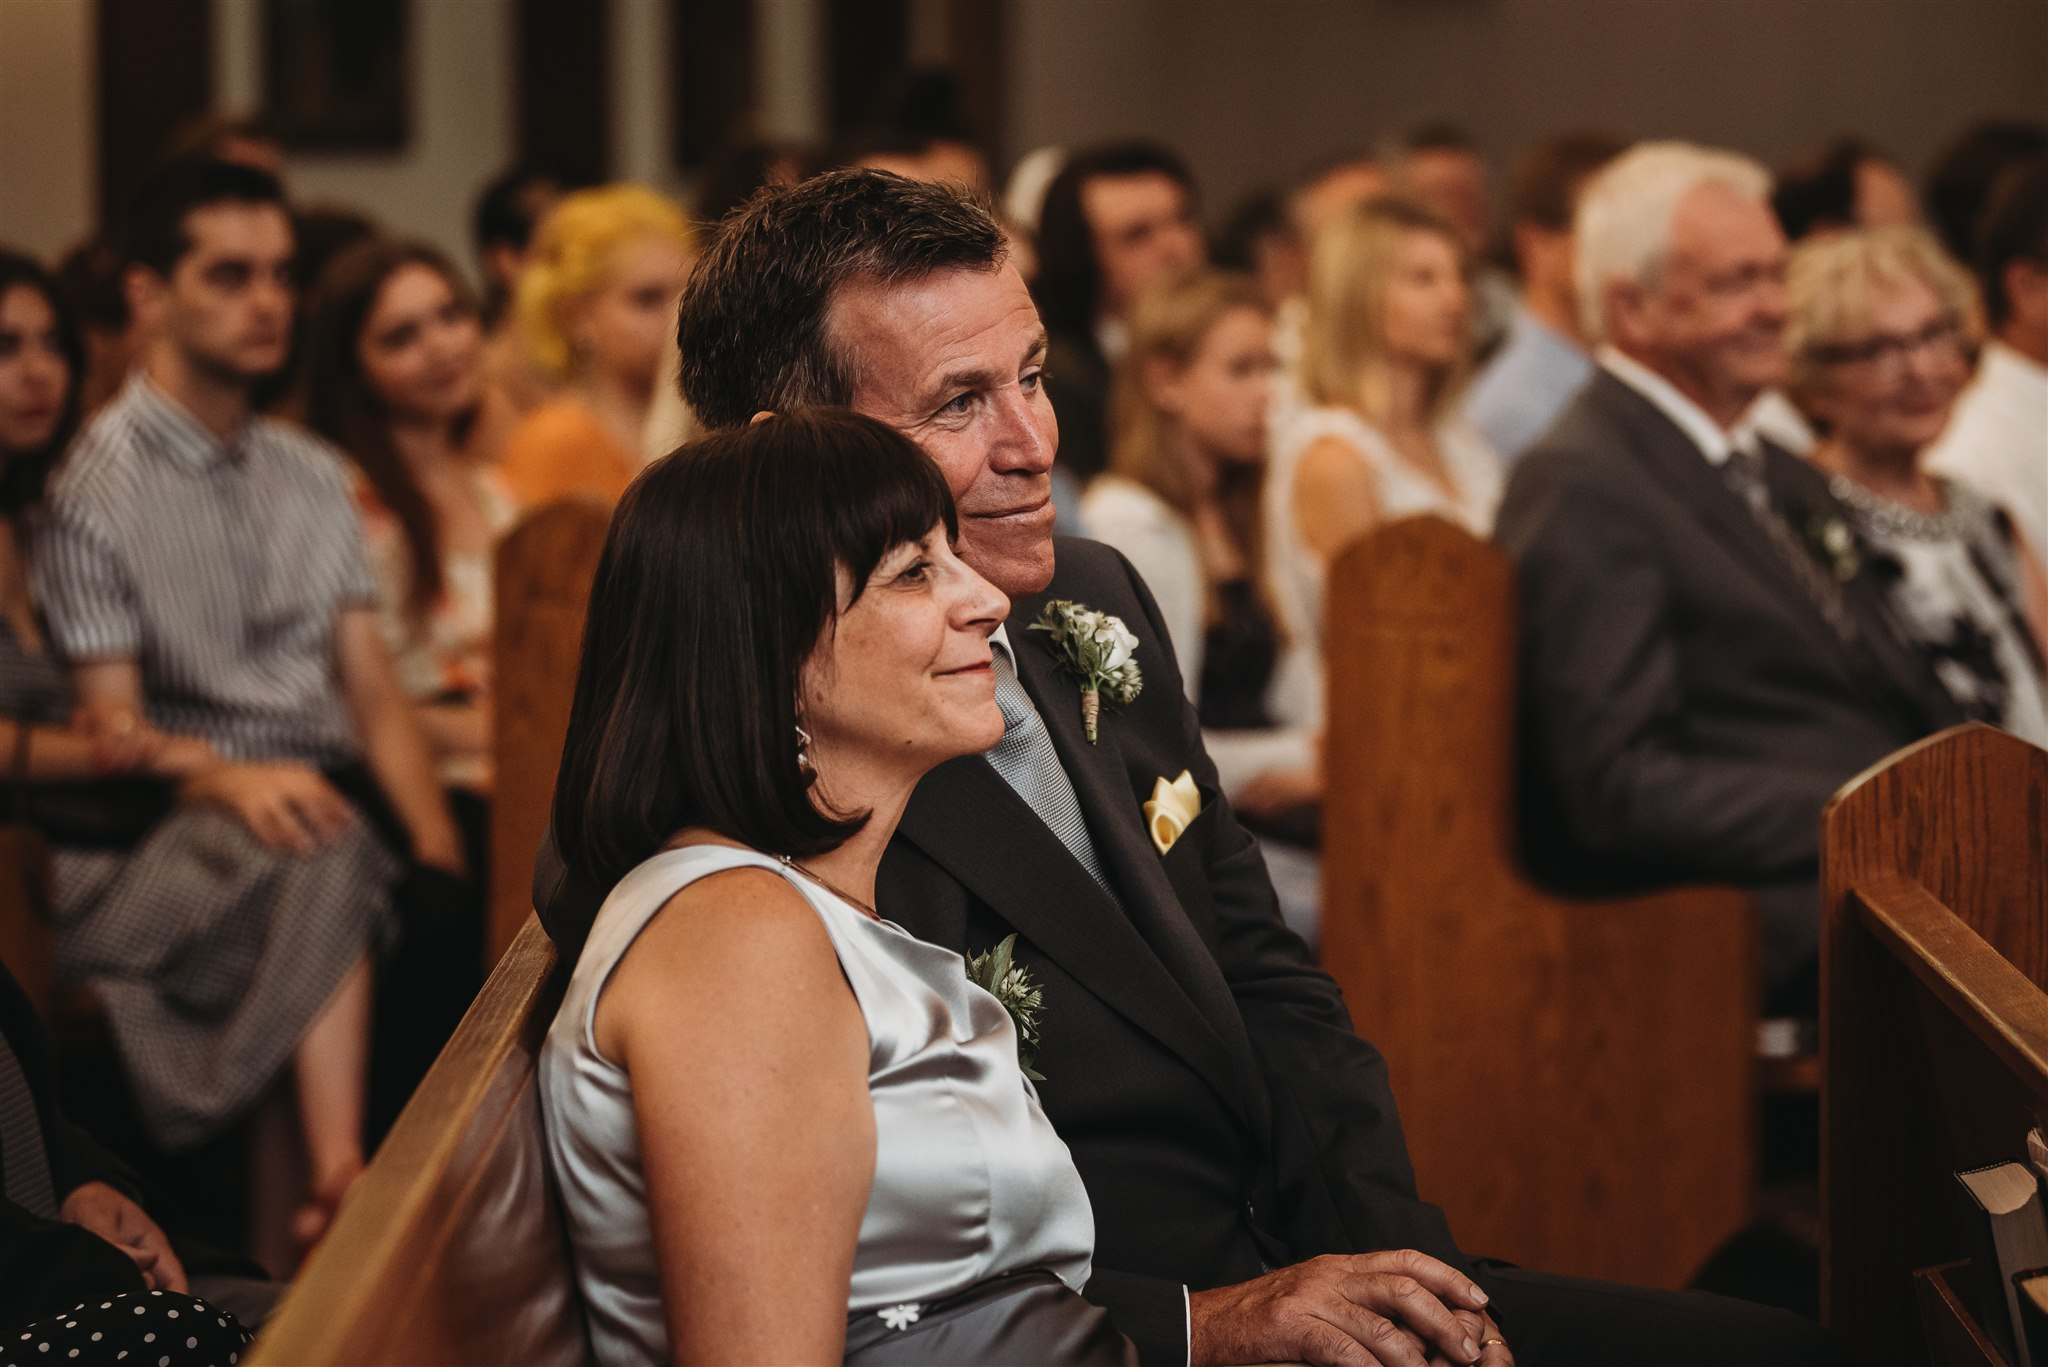 grooms parents looking at them with love during a formal catholic wedding ceremony